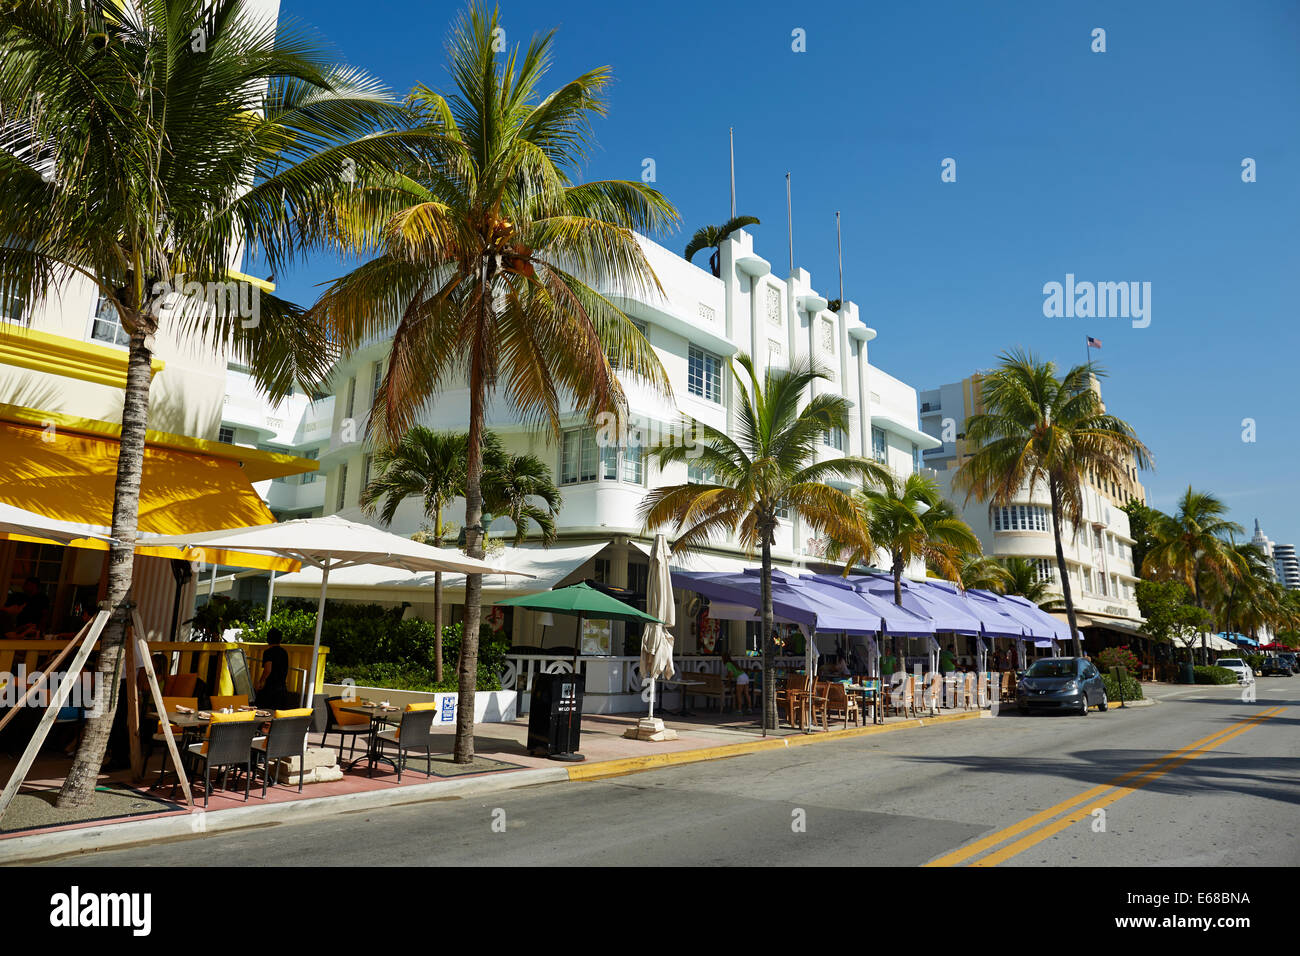 Hotels Ocean Drive Miami Beach